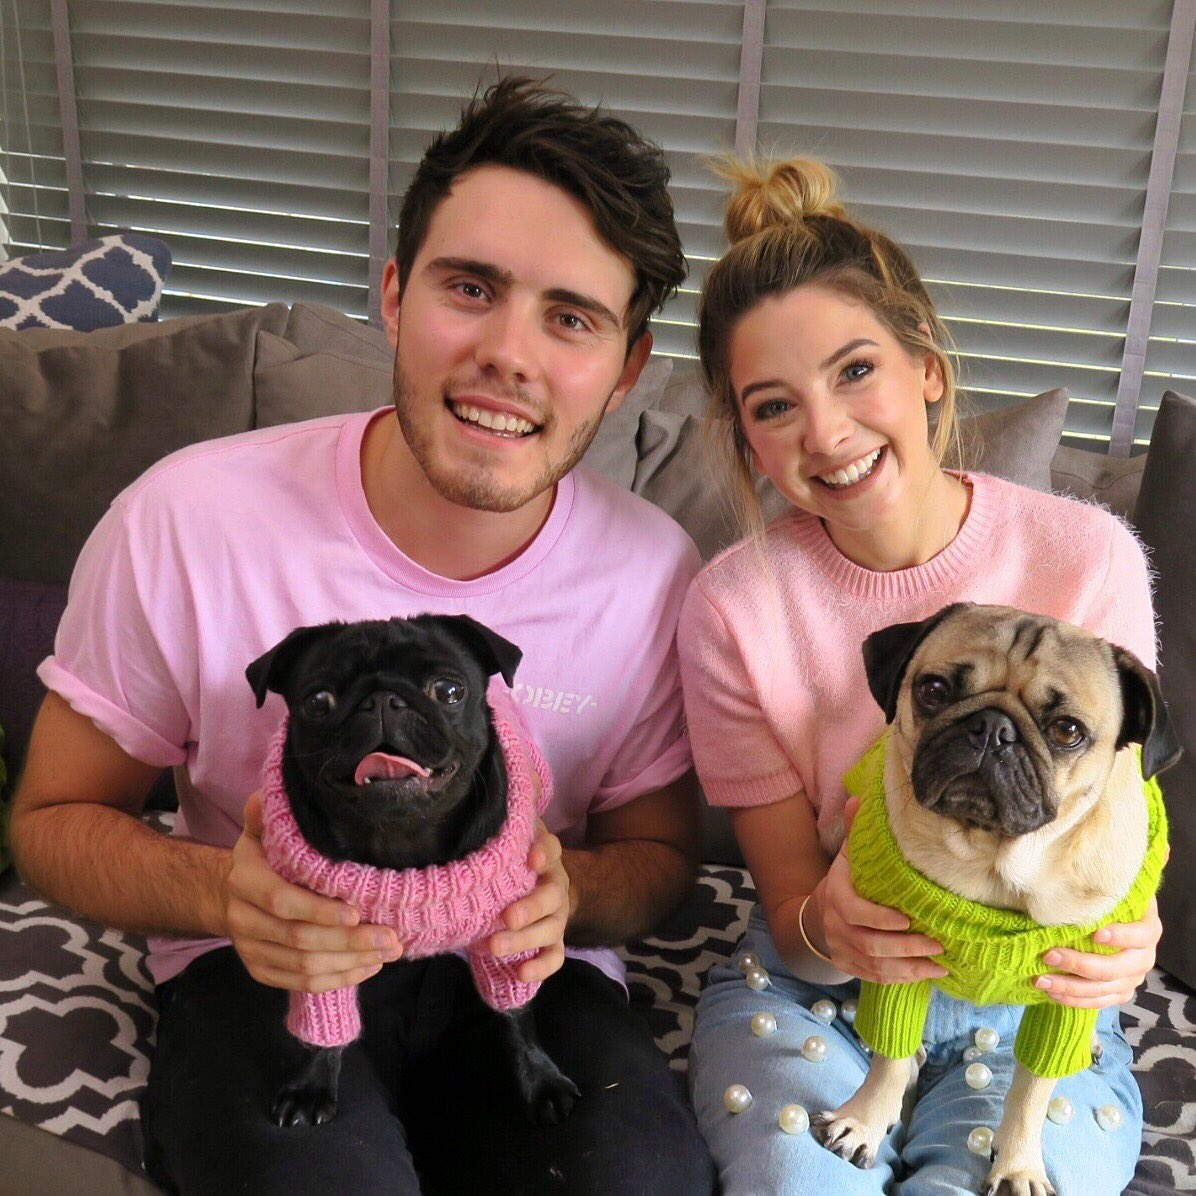 Zoella And Alfie Deyes The Story Of Their Relationship